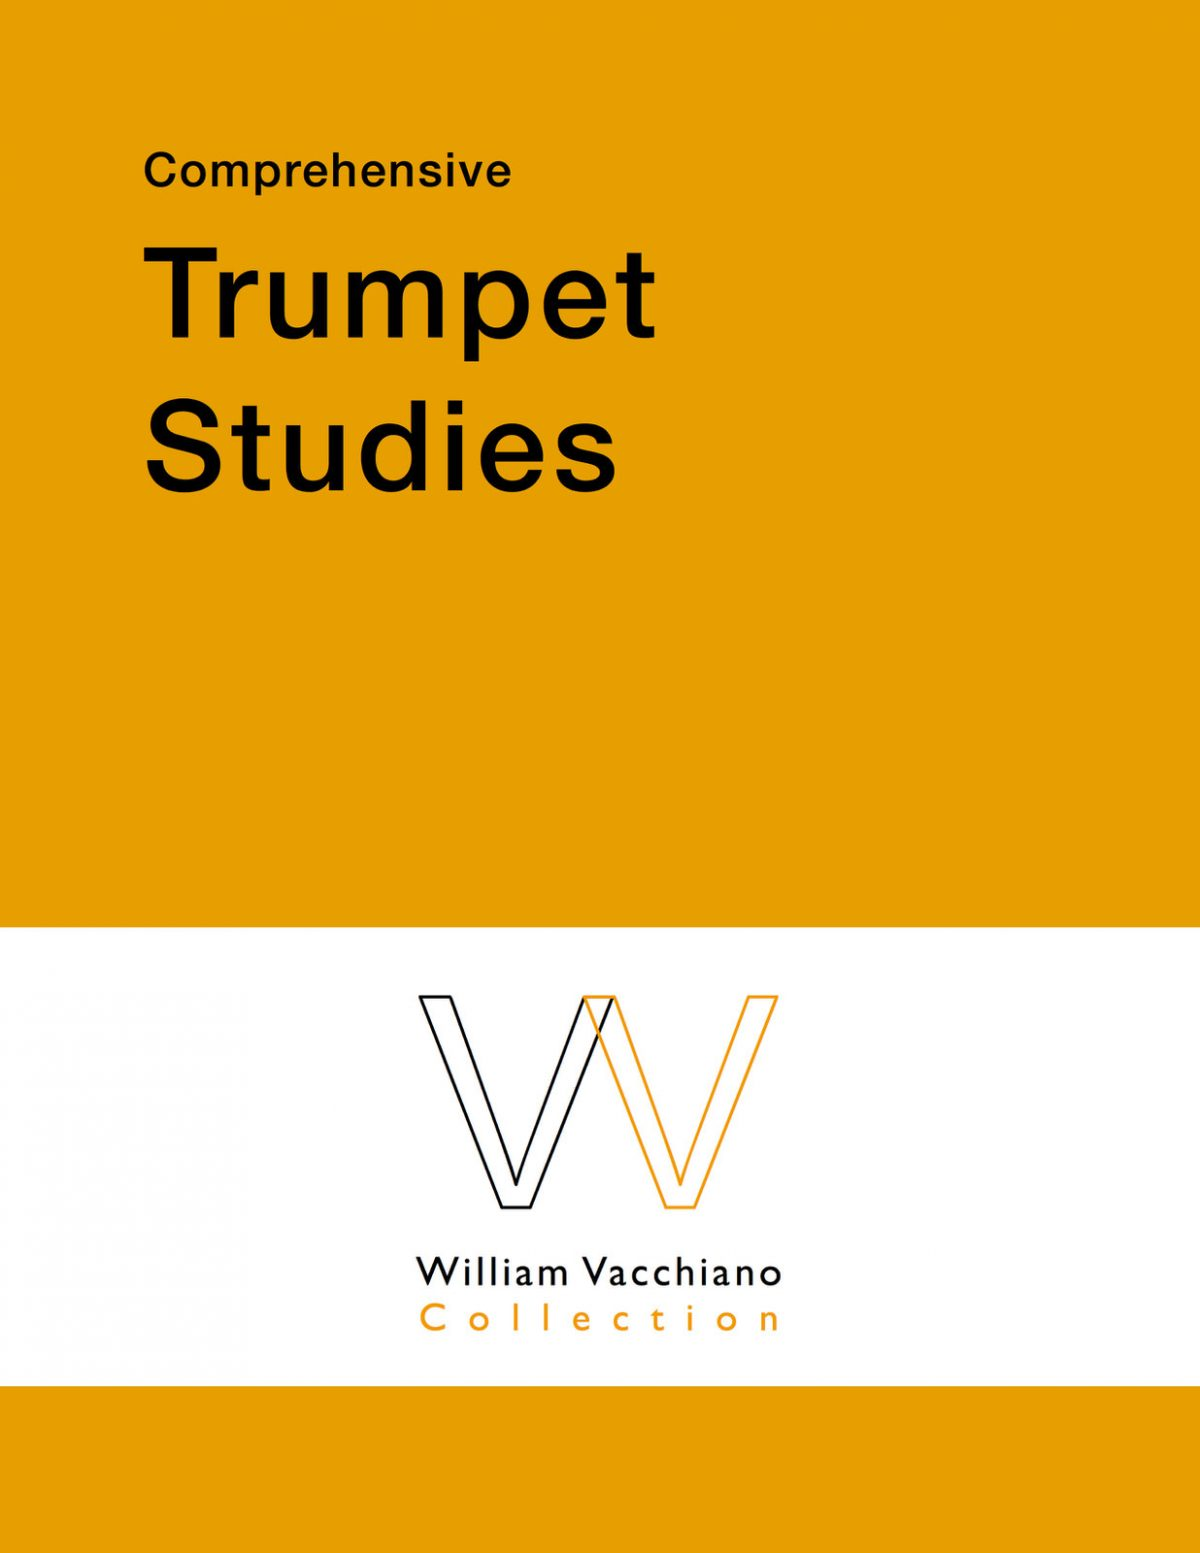 Vacchiano, Comprehensive Trumpet Studies